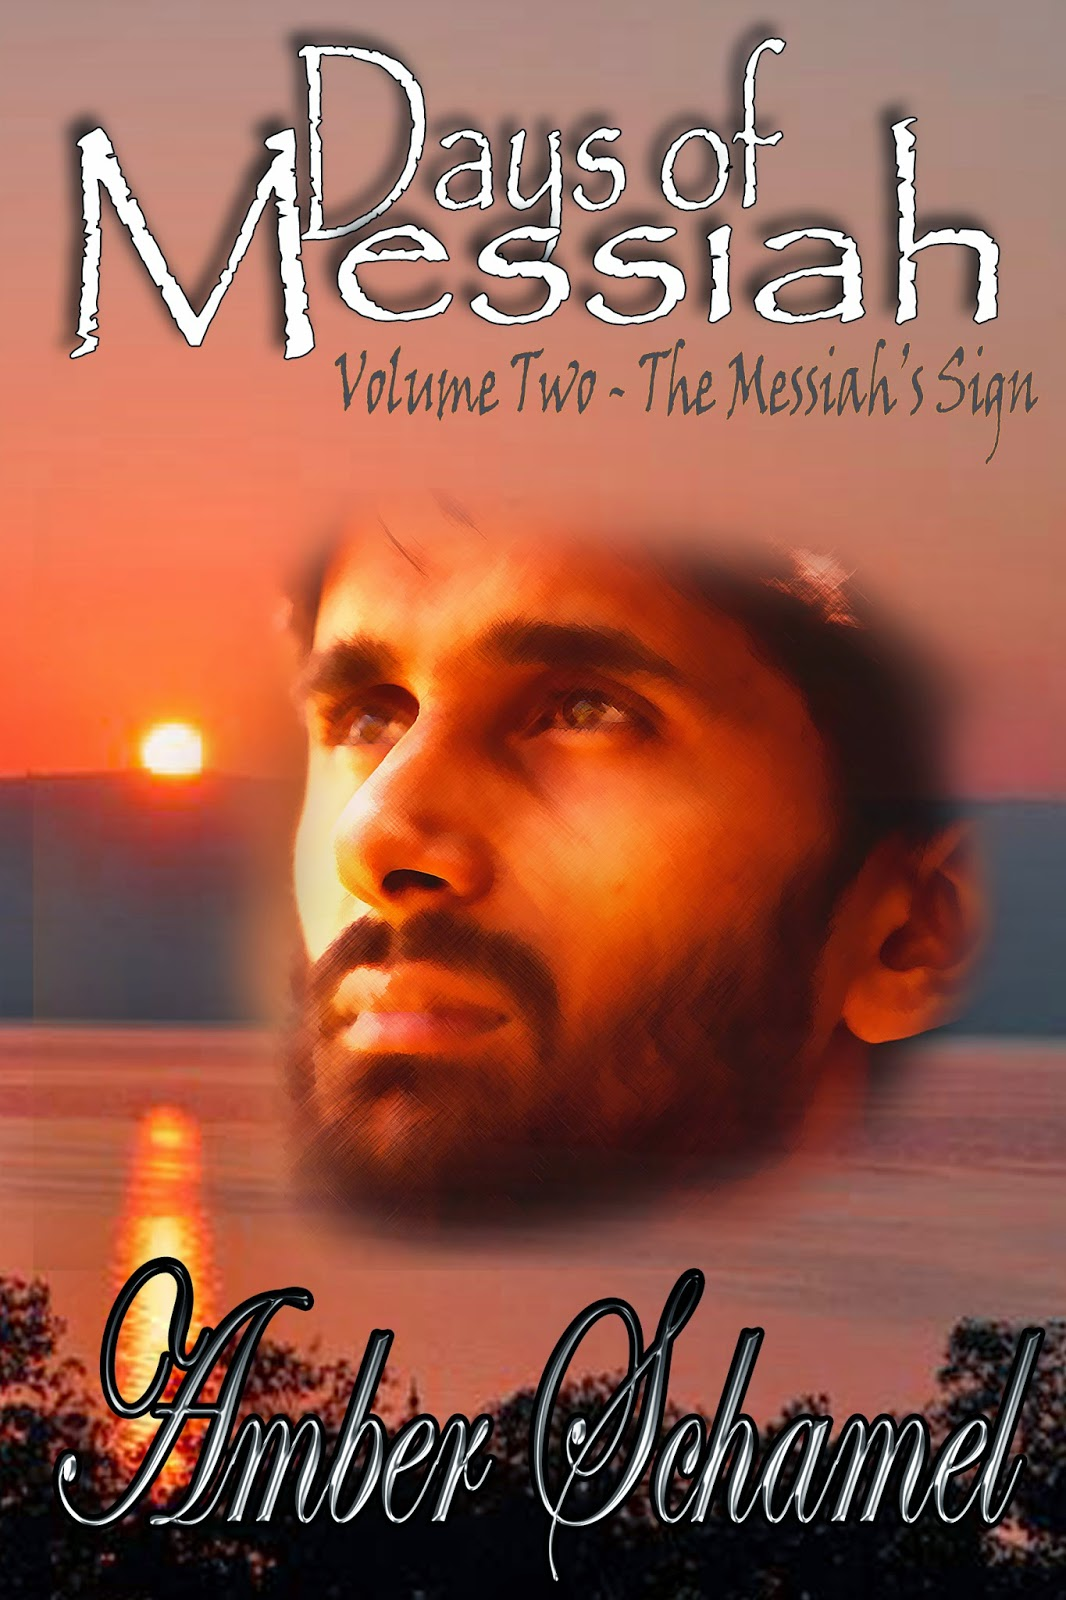 https://www.goodreads.com/event/show/941265-launch-party-for-the-messiah-s-sign